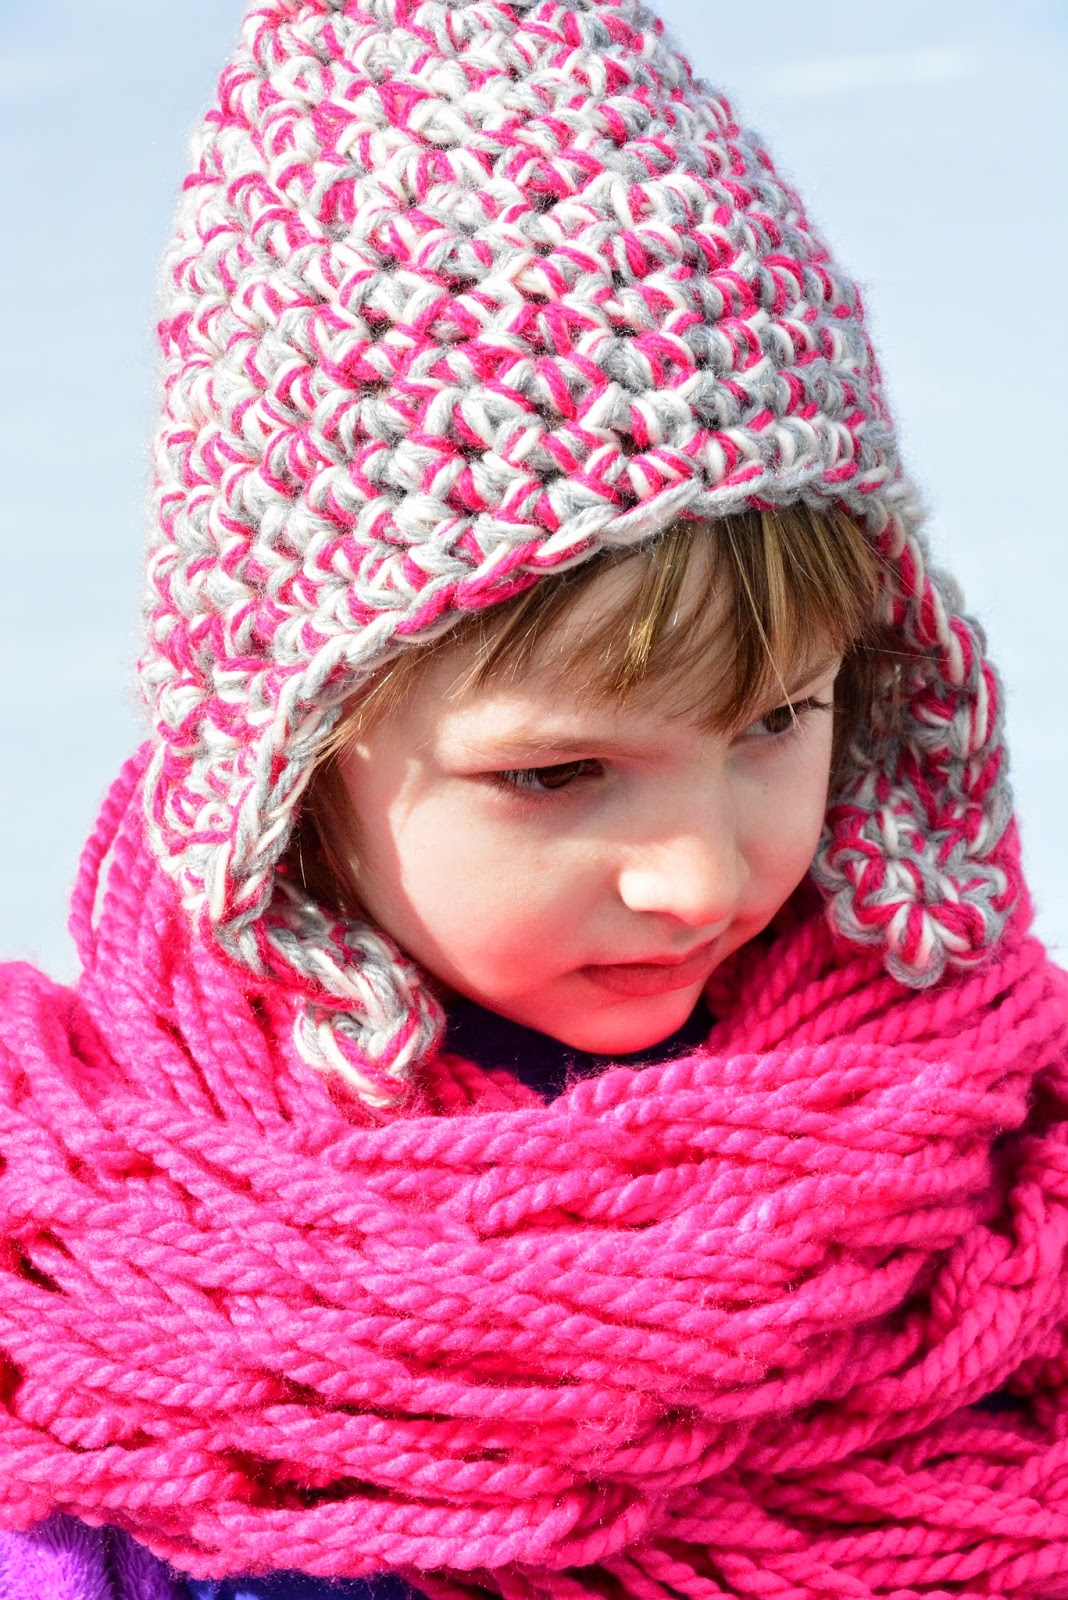 Earflap Hat Knitting Pattern Bulky Yarn : Aesthetic Nest: Crochet: Triple-Strand Earflap Hats for ...